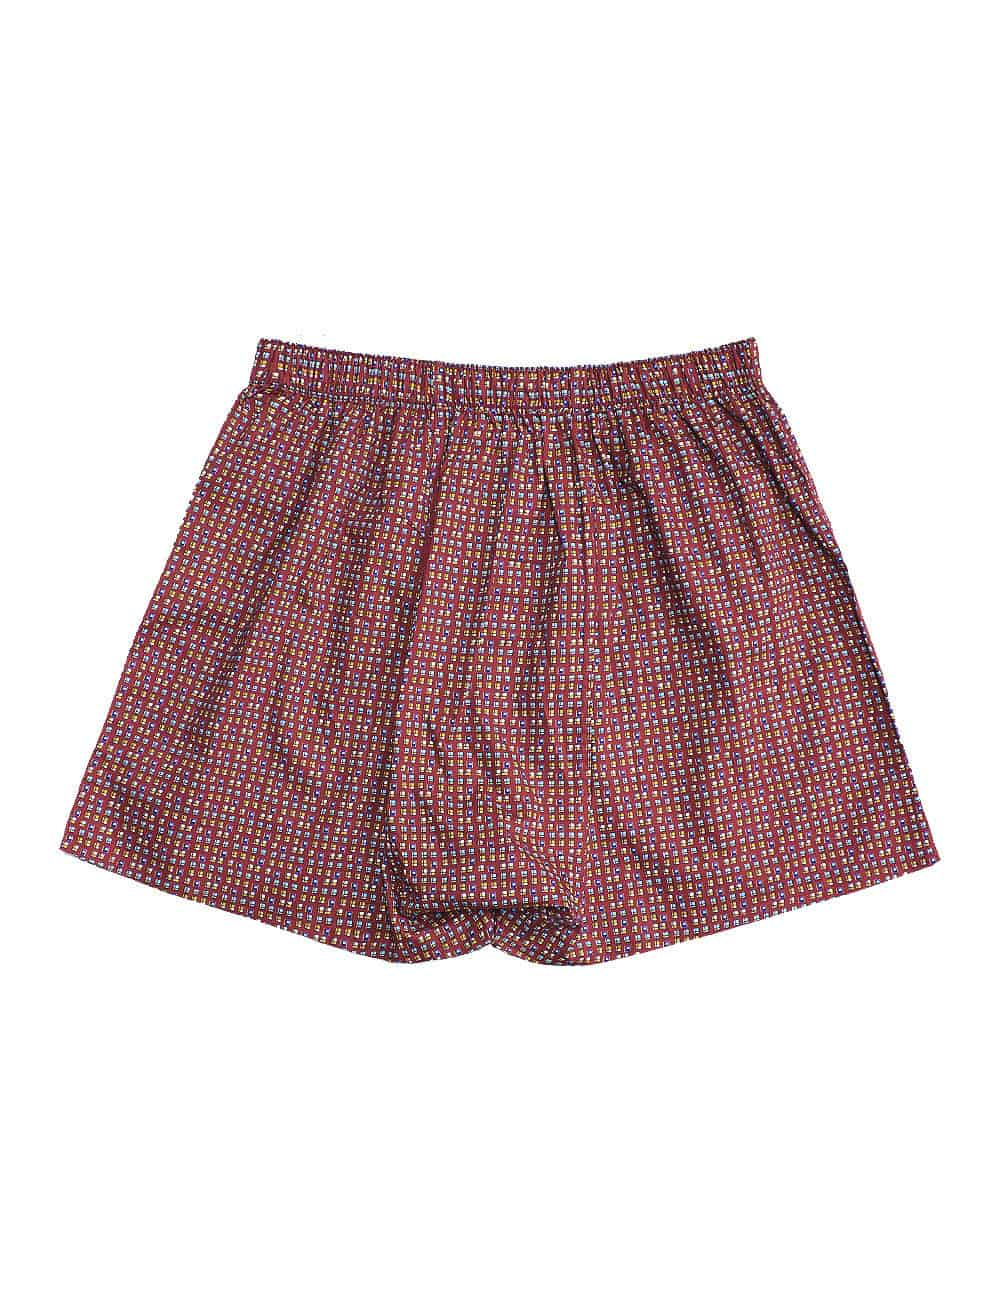 Silky Finish Singapore Collection Red HDB Geometric Print Boxer Shorts IW1A8.1